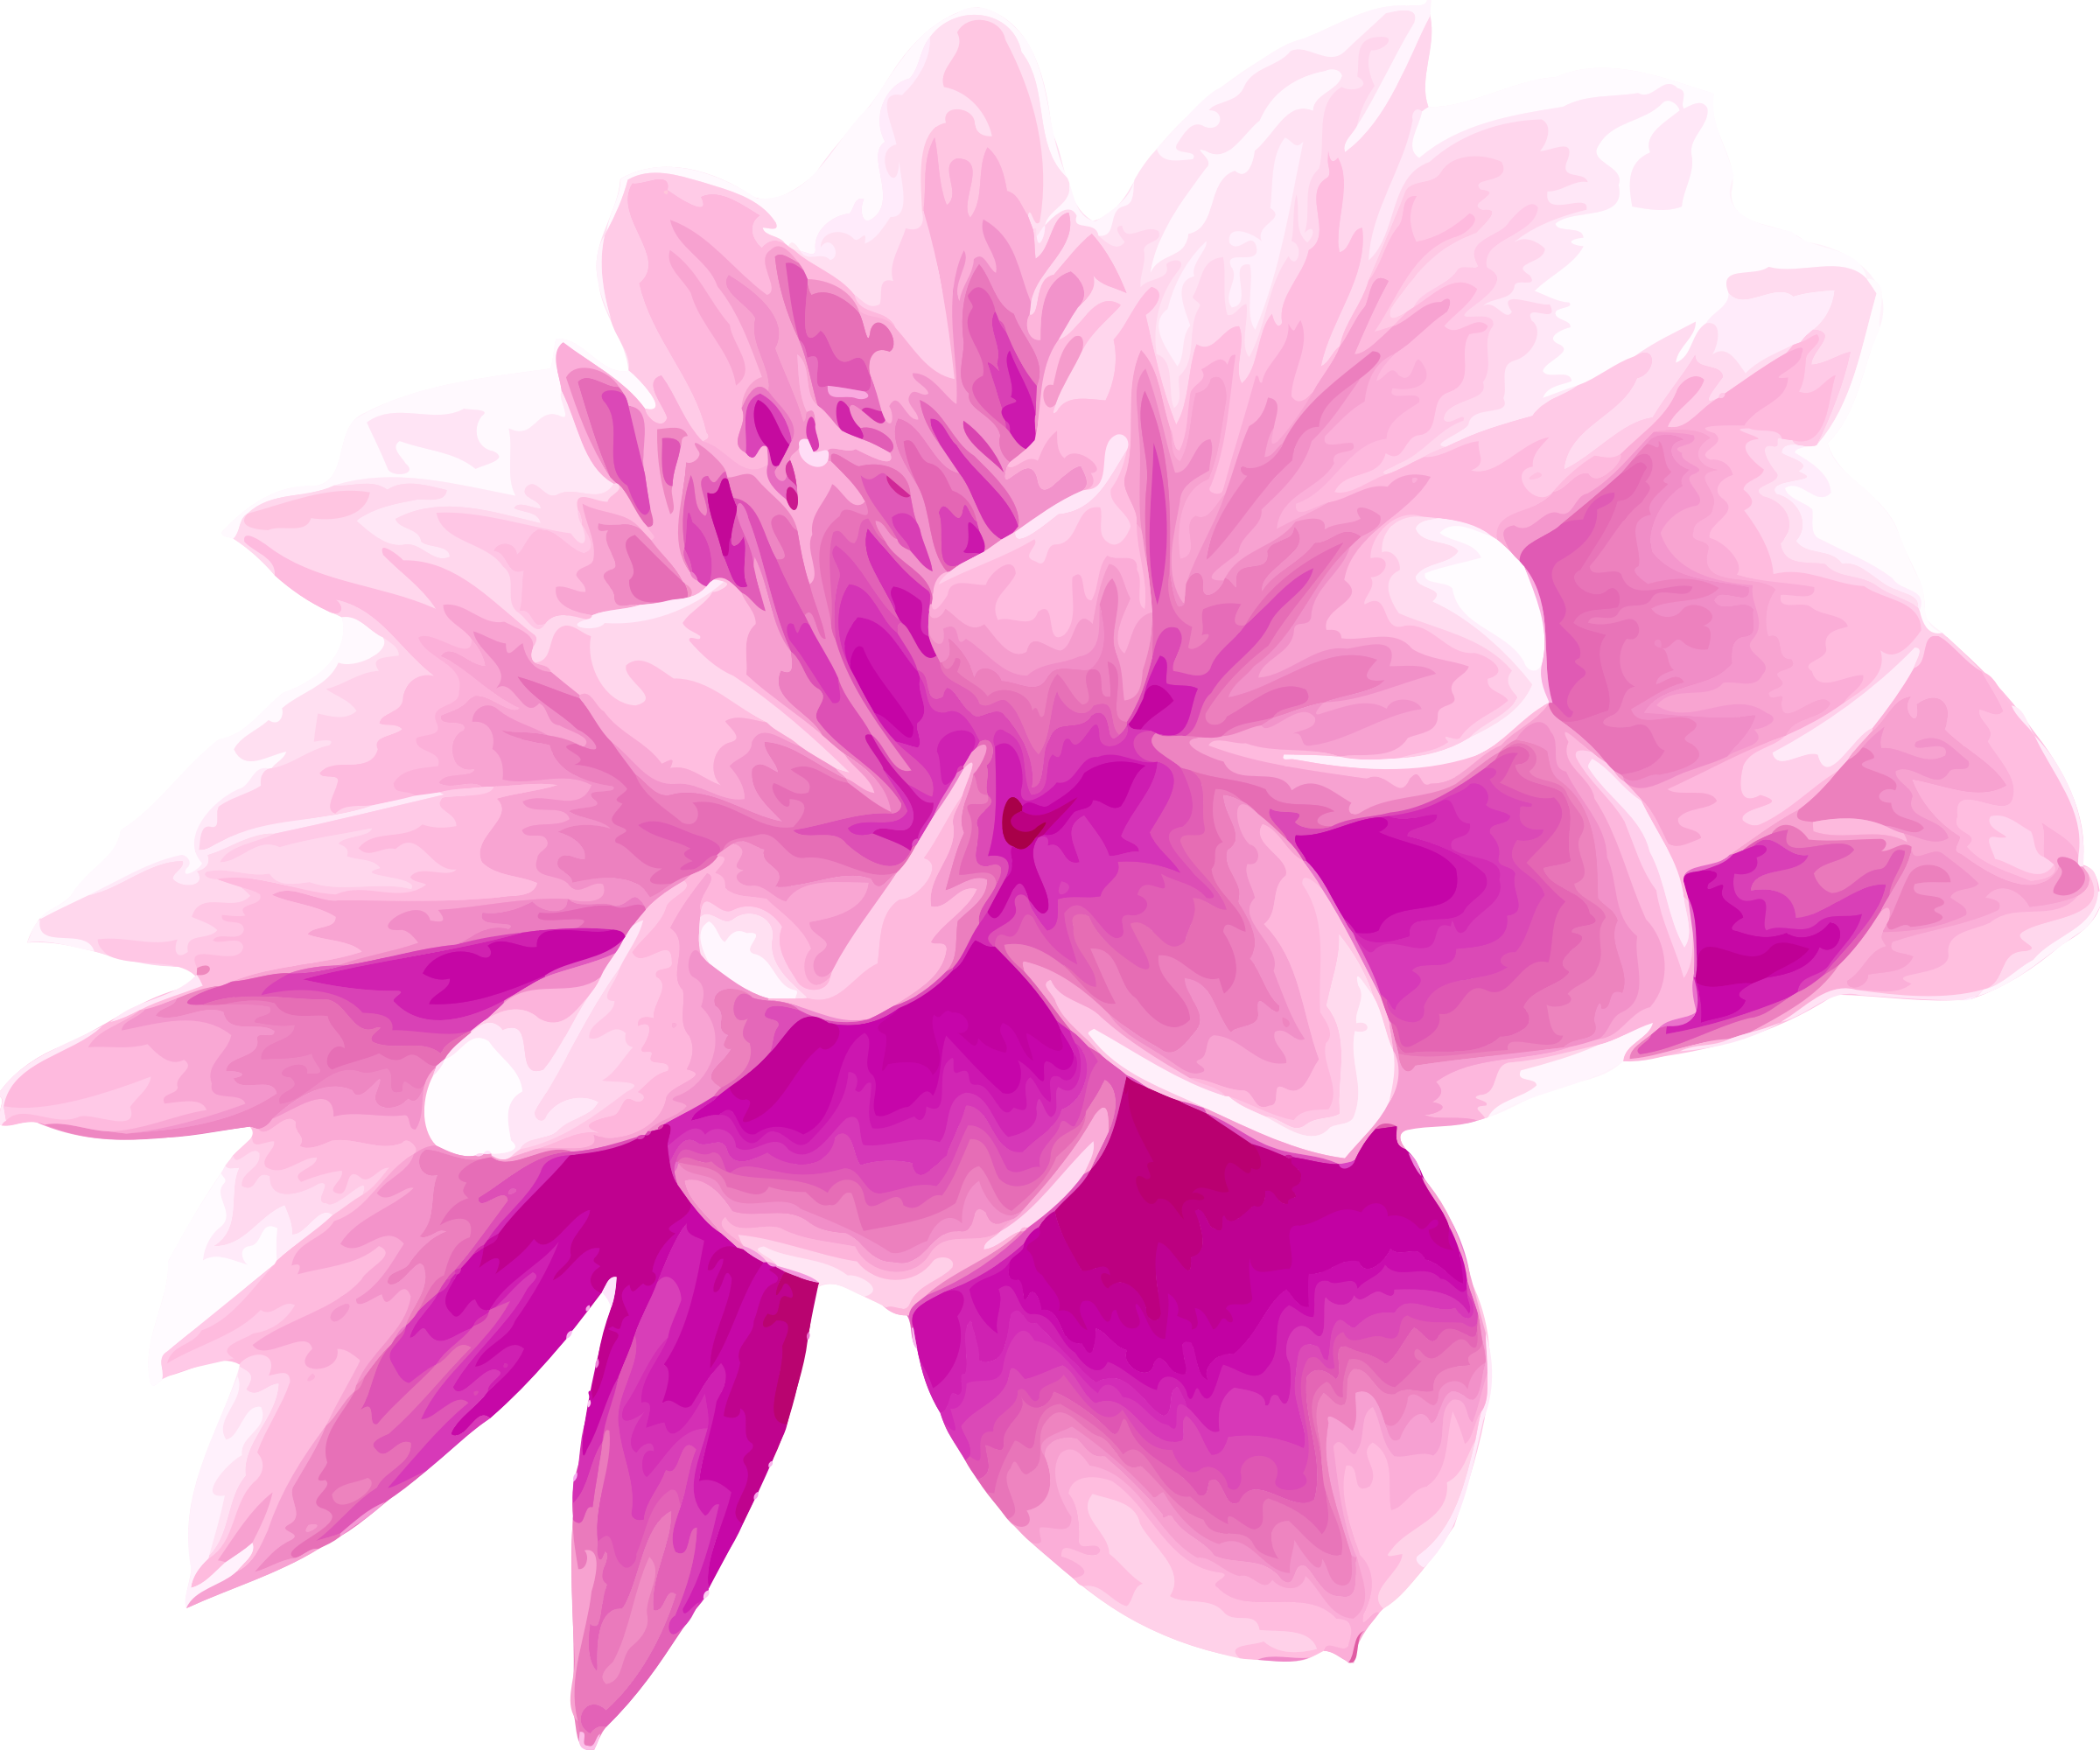 Pink flower by Firkin